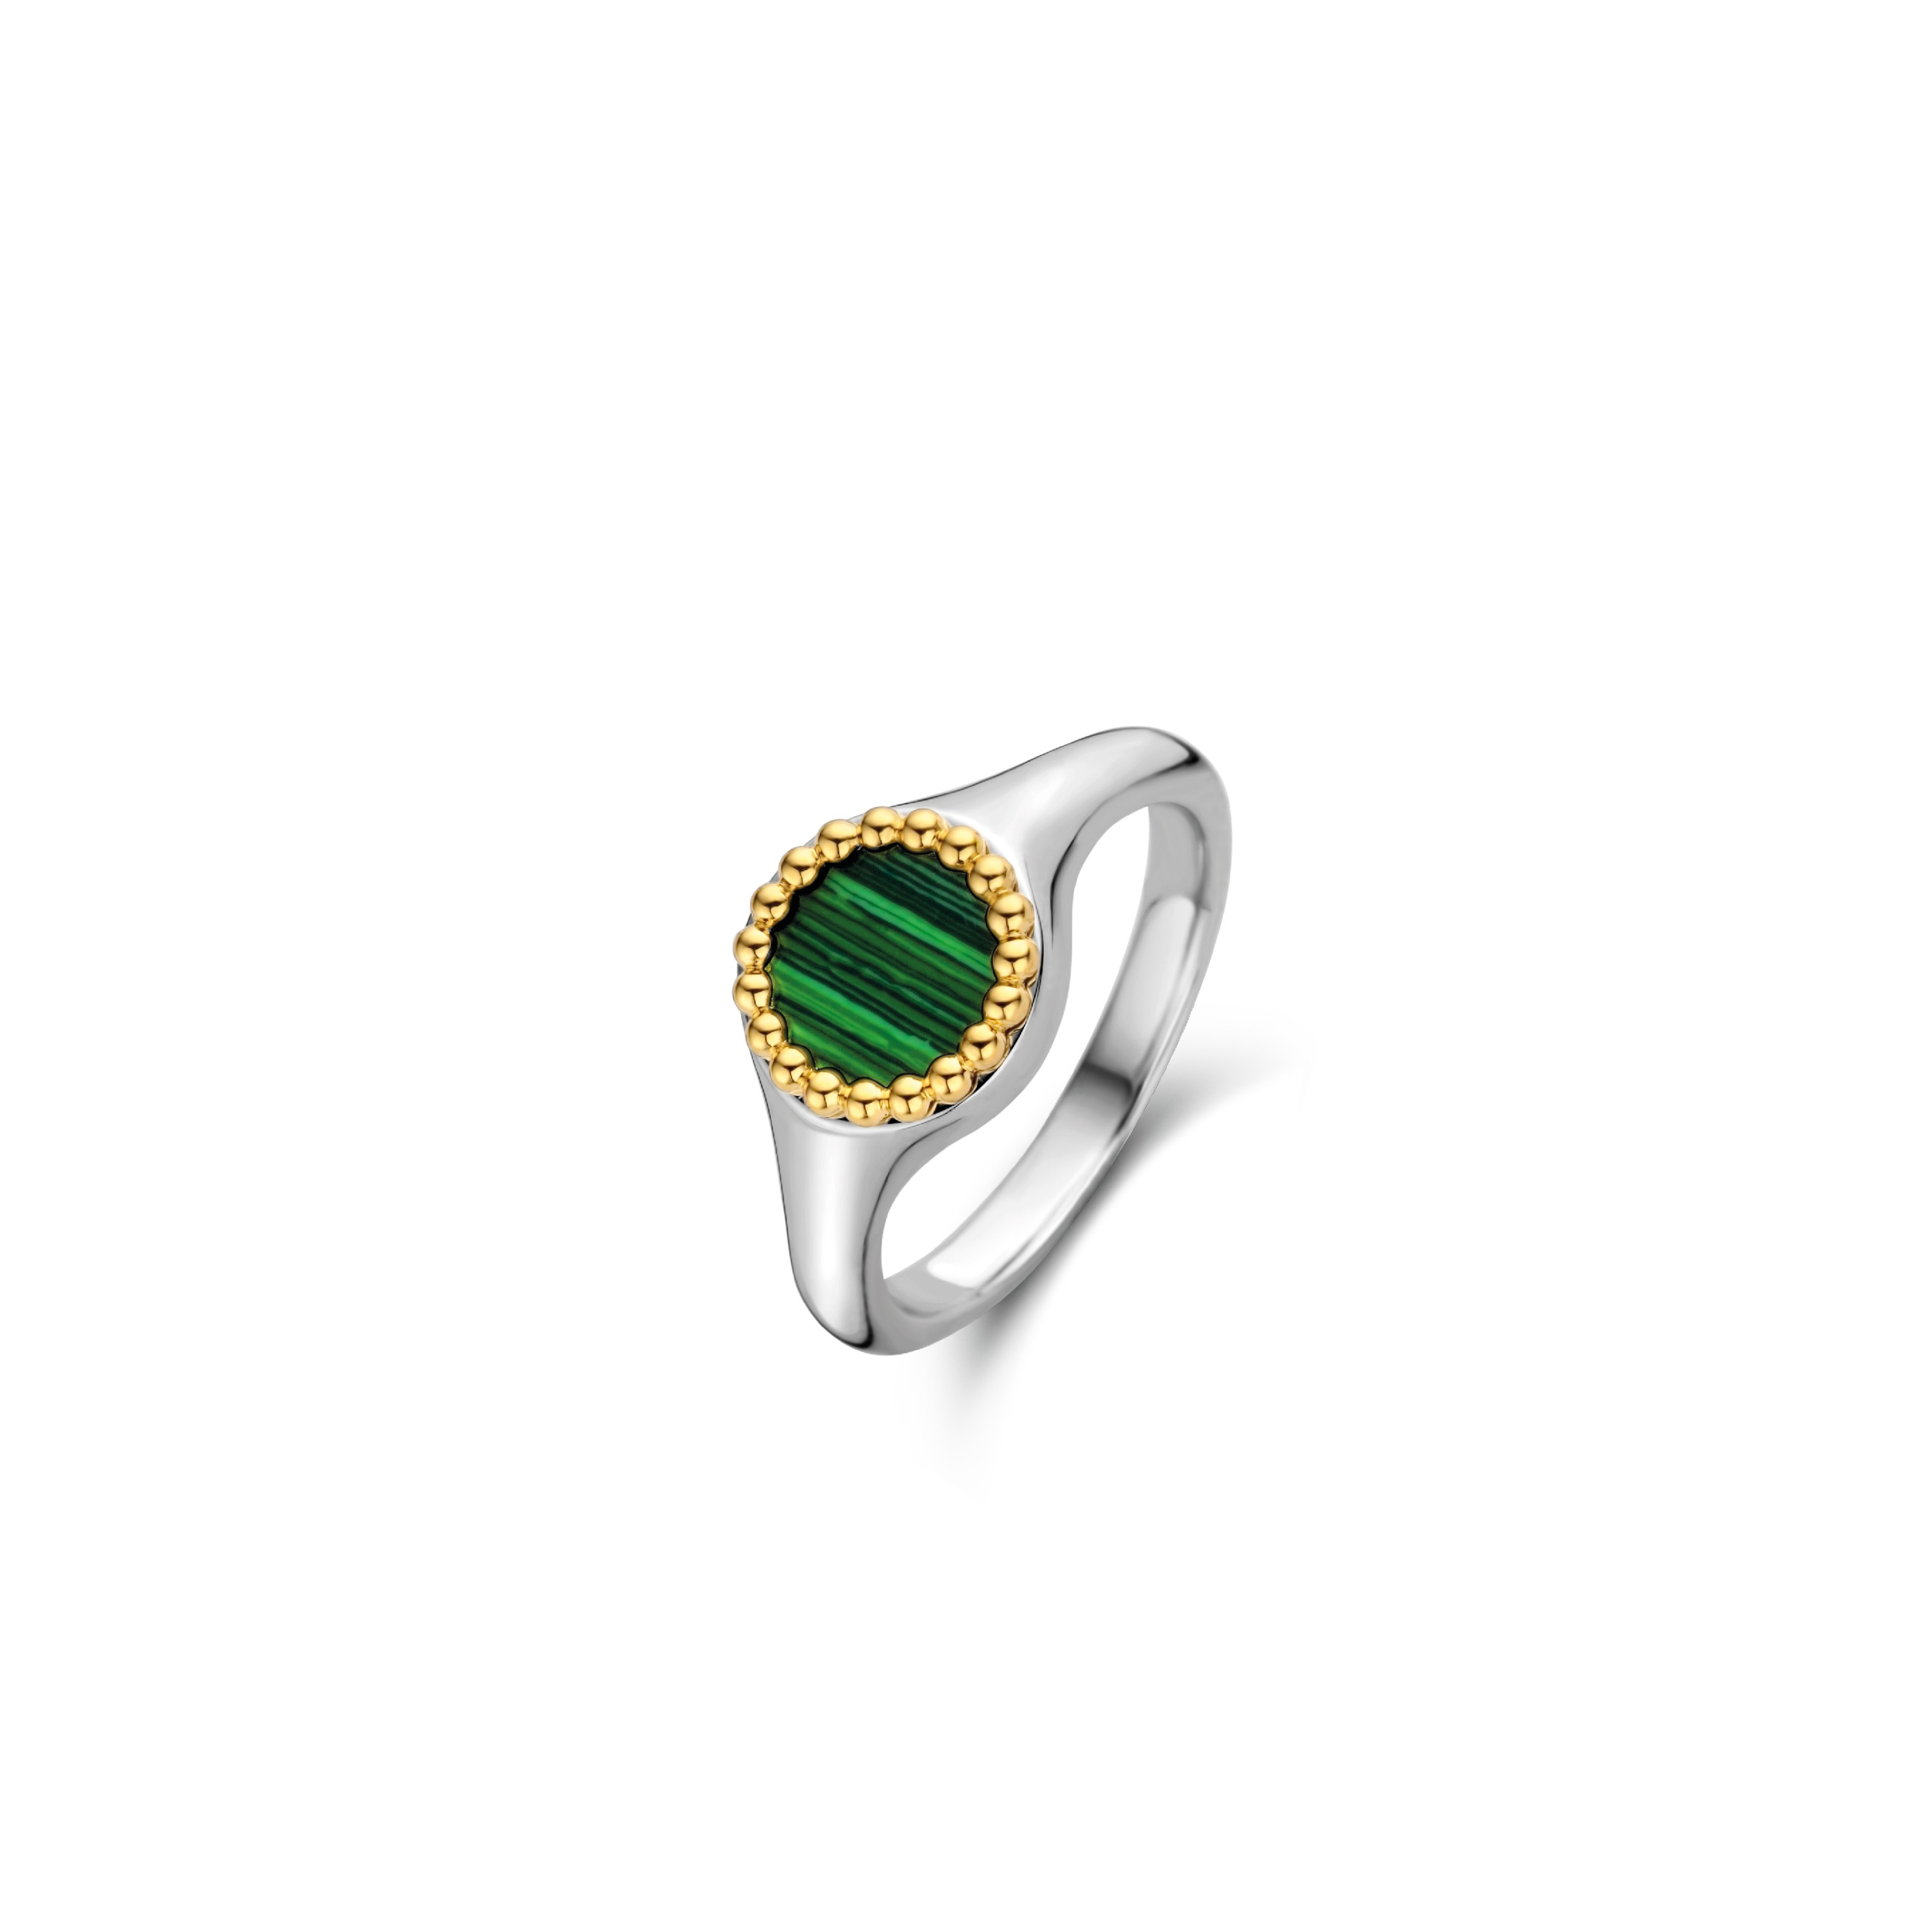 TI SENTO Milano Ring 12207MA Zilver gold plated Maat 58